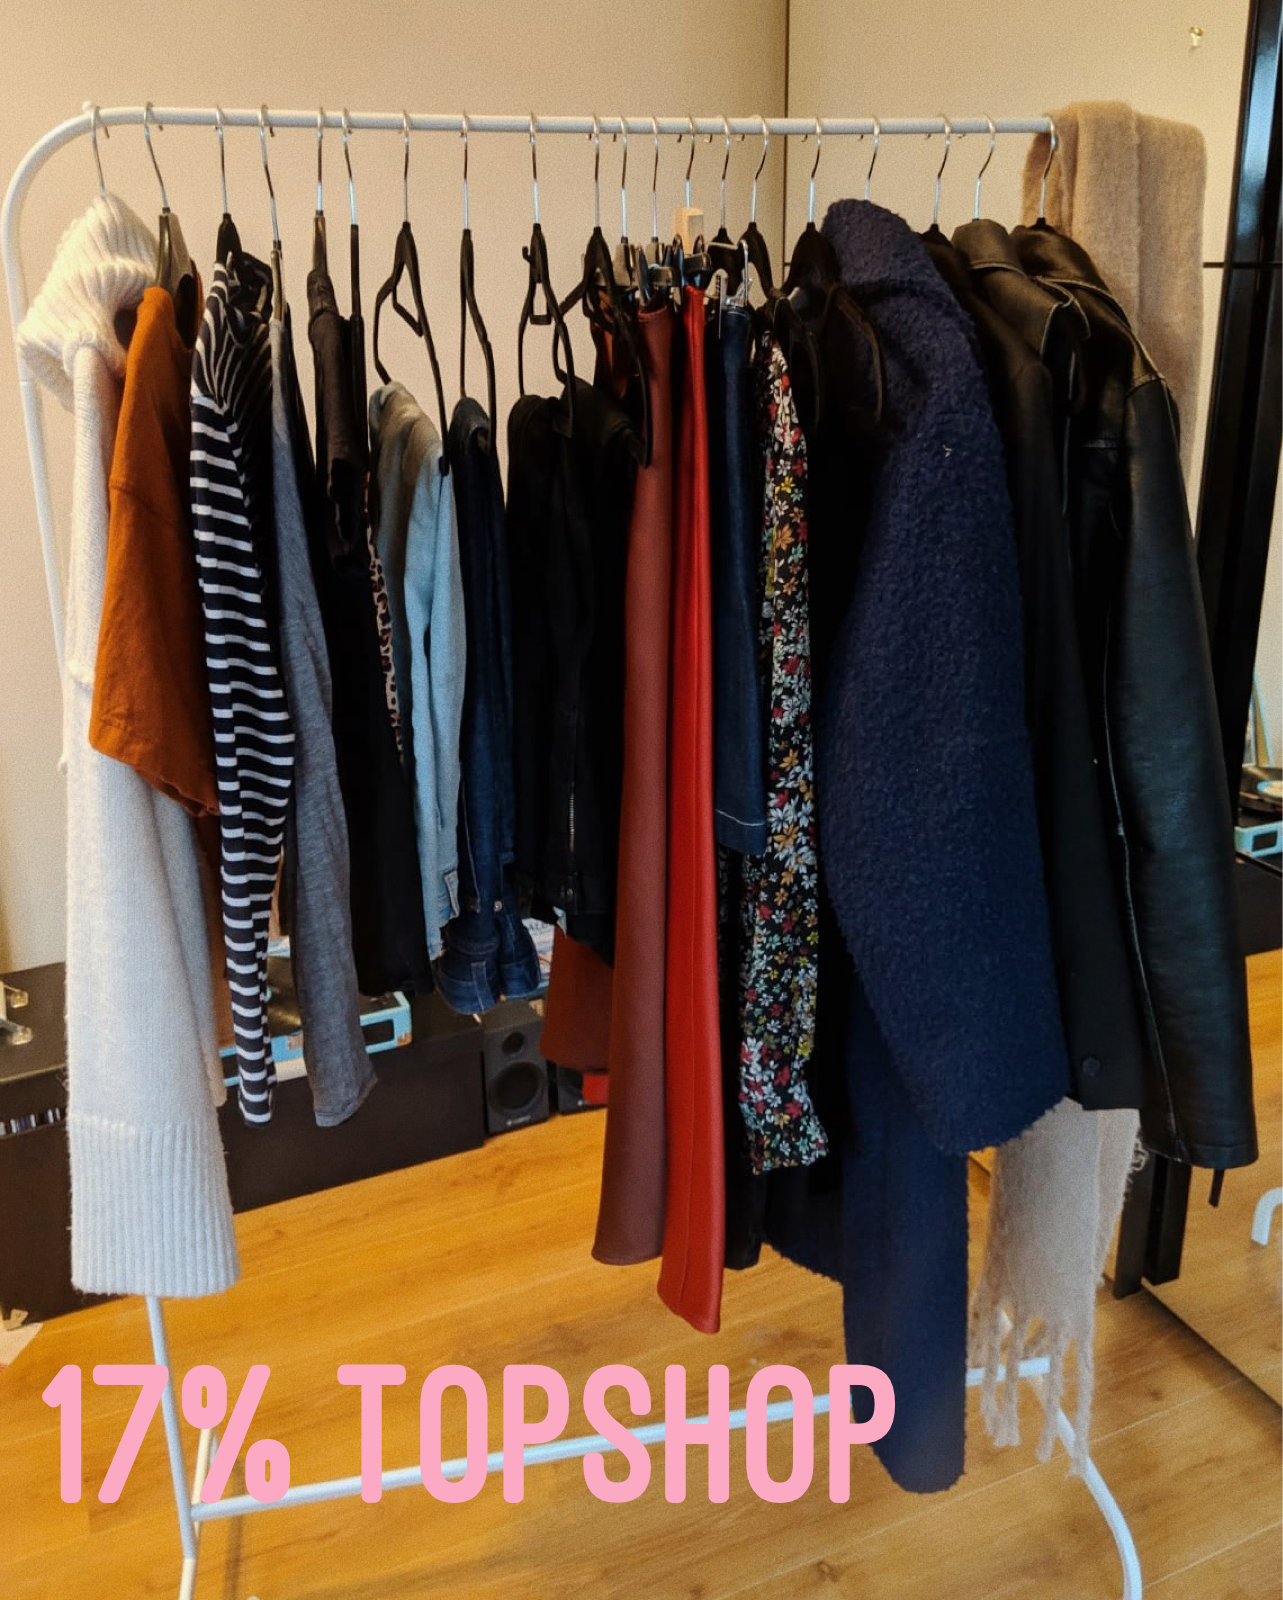 Rust t-shirt * (gifted),  Light Wash Kick Flare Jeans *,  Black Straight Leg Jeans *,  Black Kick Flare Jeans* ,  Navy Coat*  (I used my gifted Topshop voucher to pay for some of this coat, the rest I paid for with my own money)